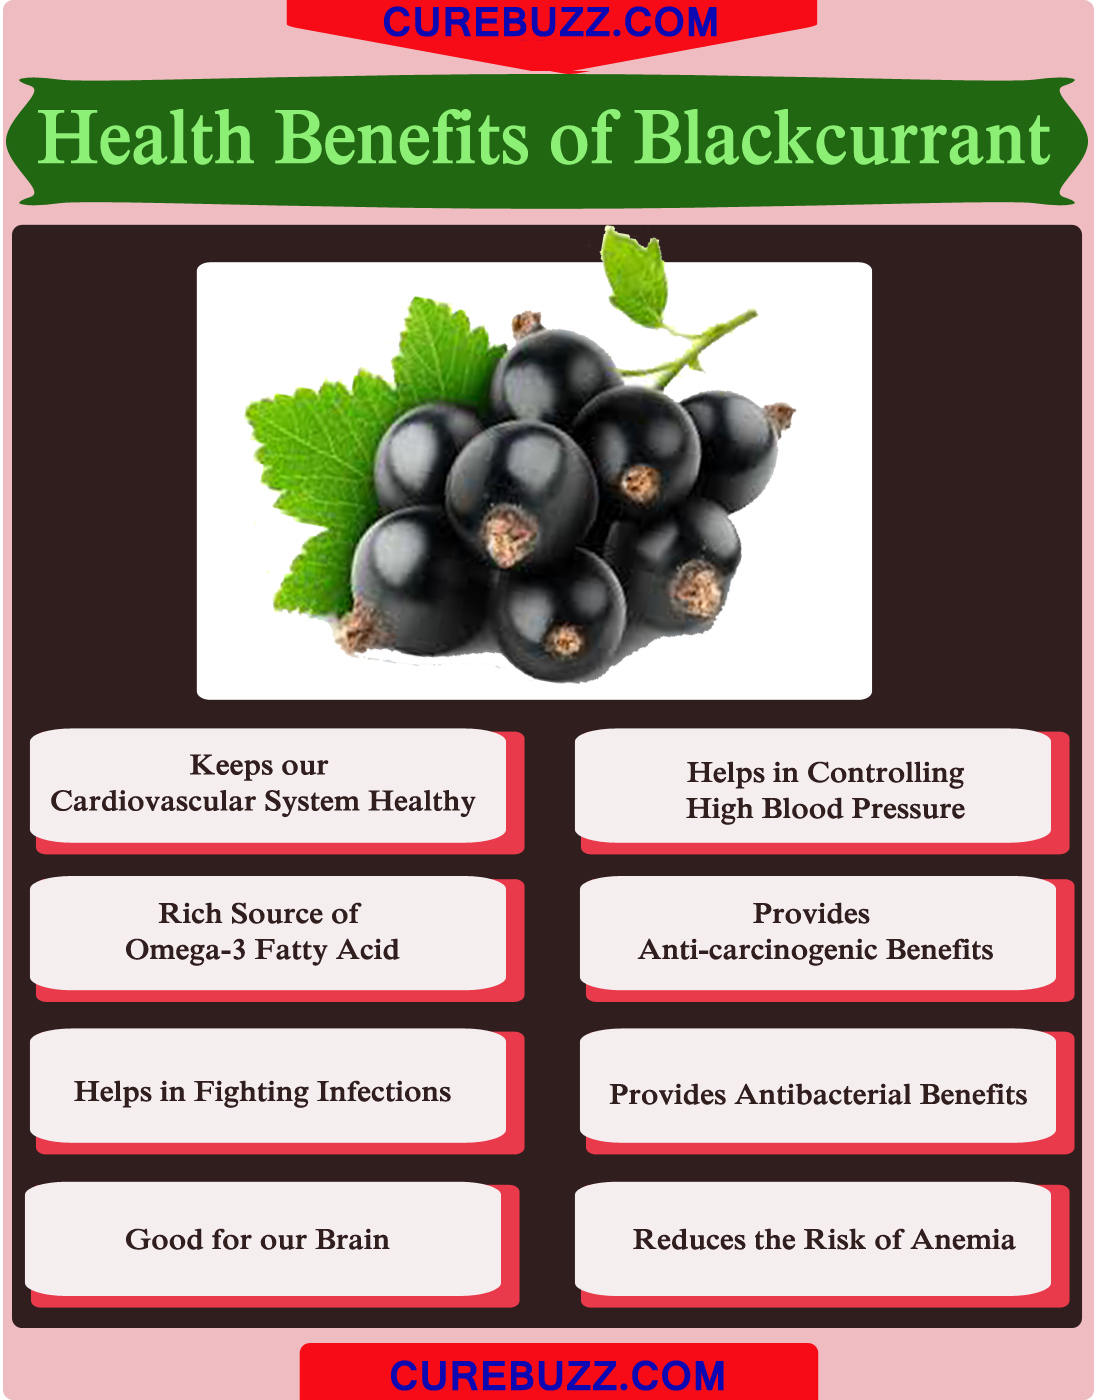 Health Benefits of Blackcurrant